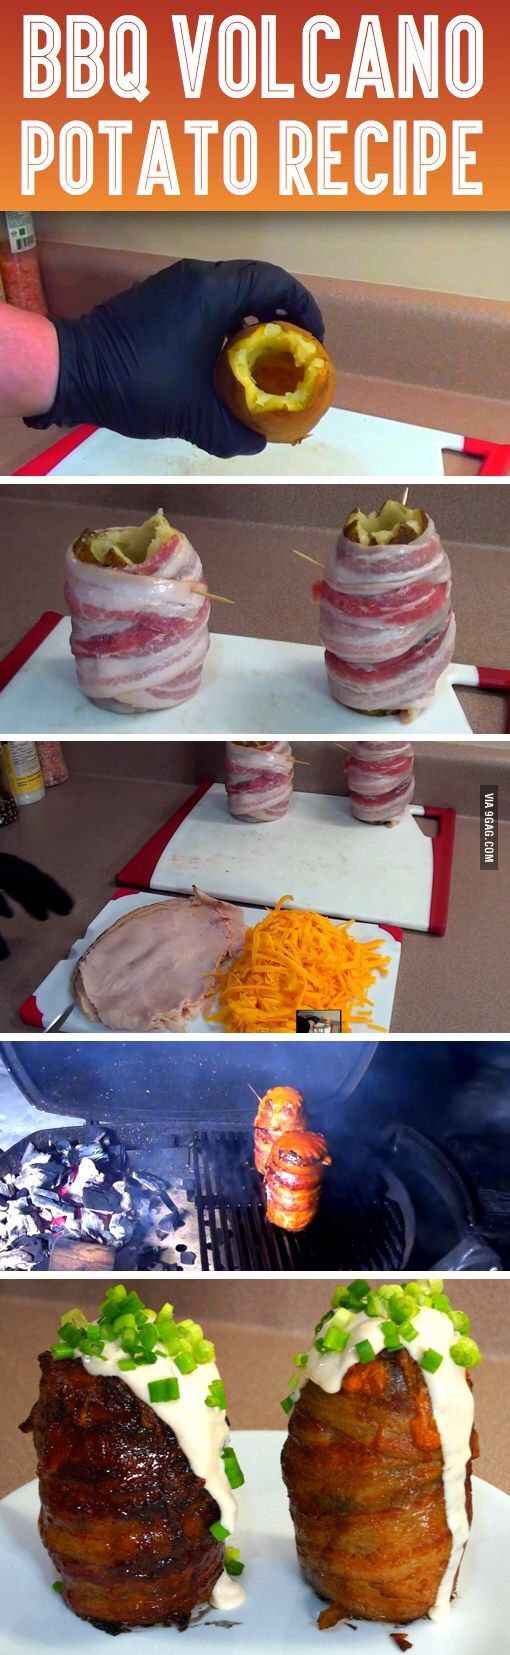 BBQ Volcano Potatoes - 9GAG